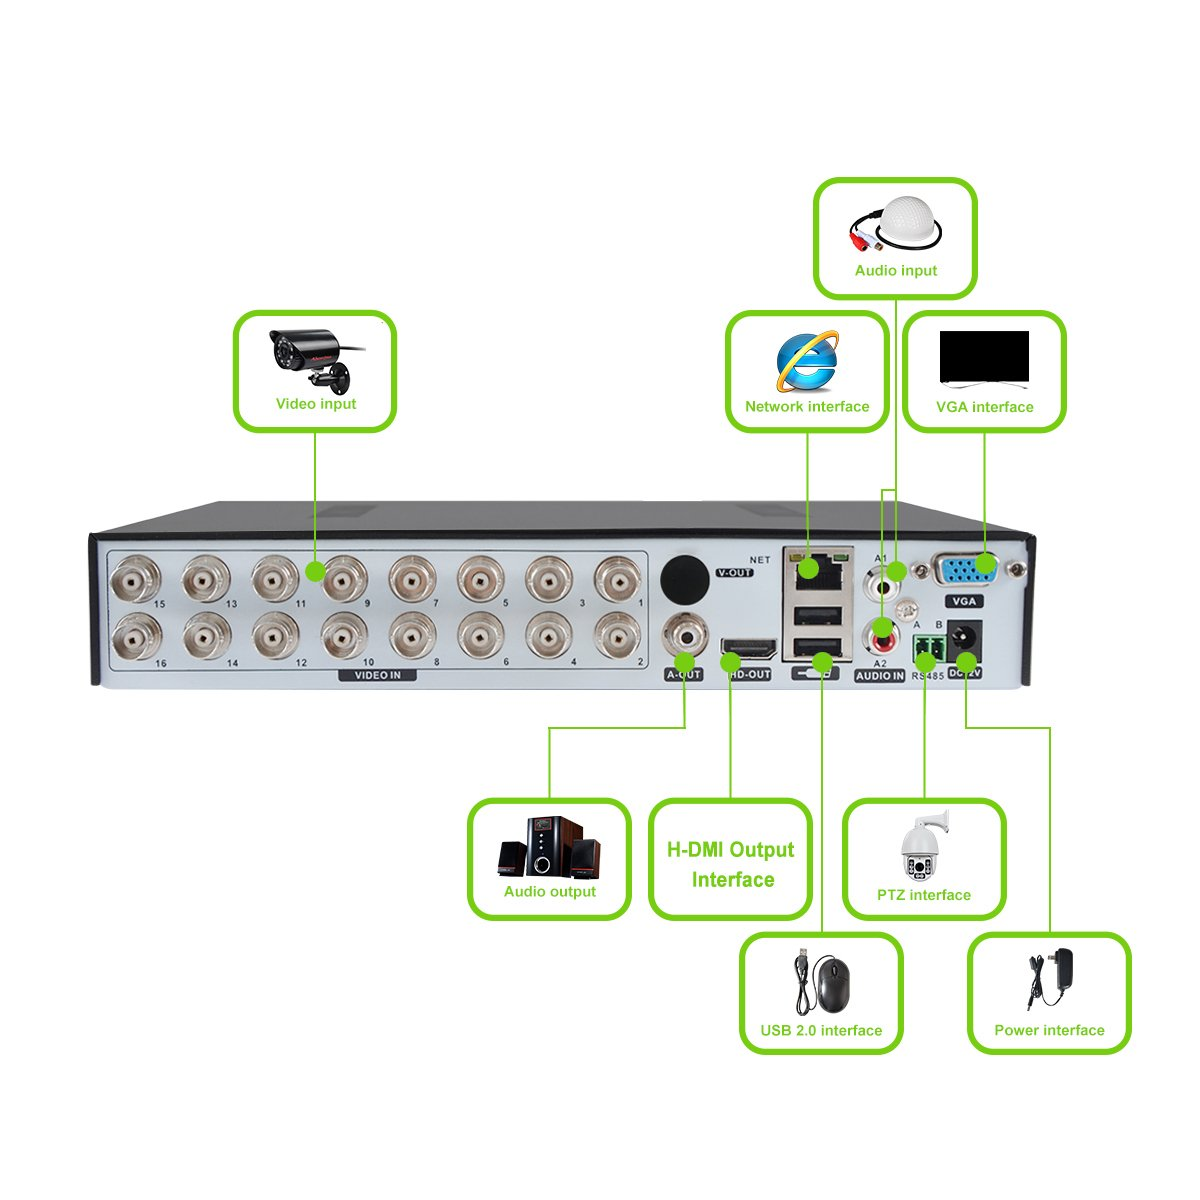 16 Channels DVR Recorder Hybrid DVR H.264 CCTV Security Camera System Digital Video Recorder(No hard drive included) by Abowone (Image #4)